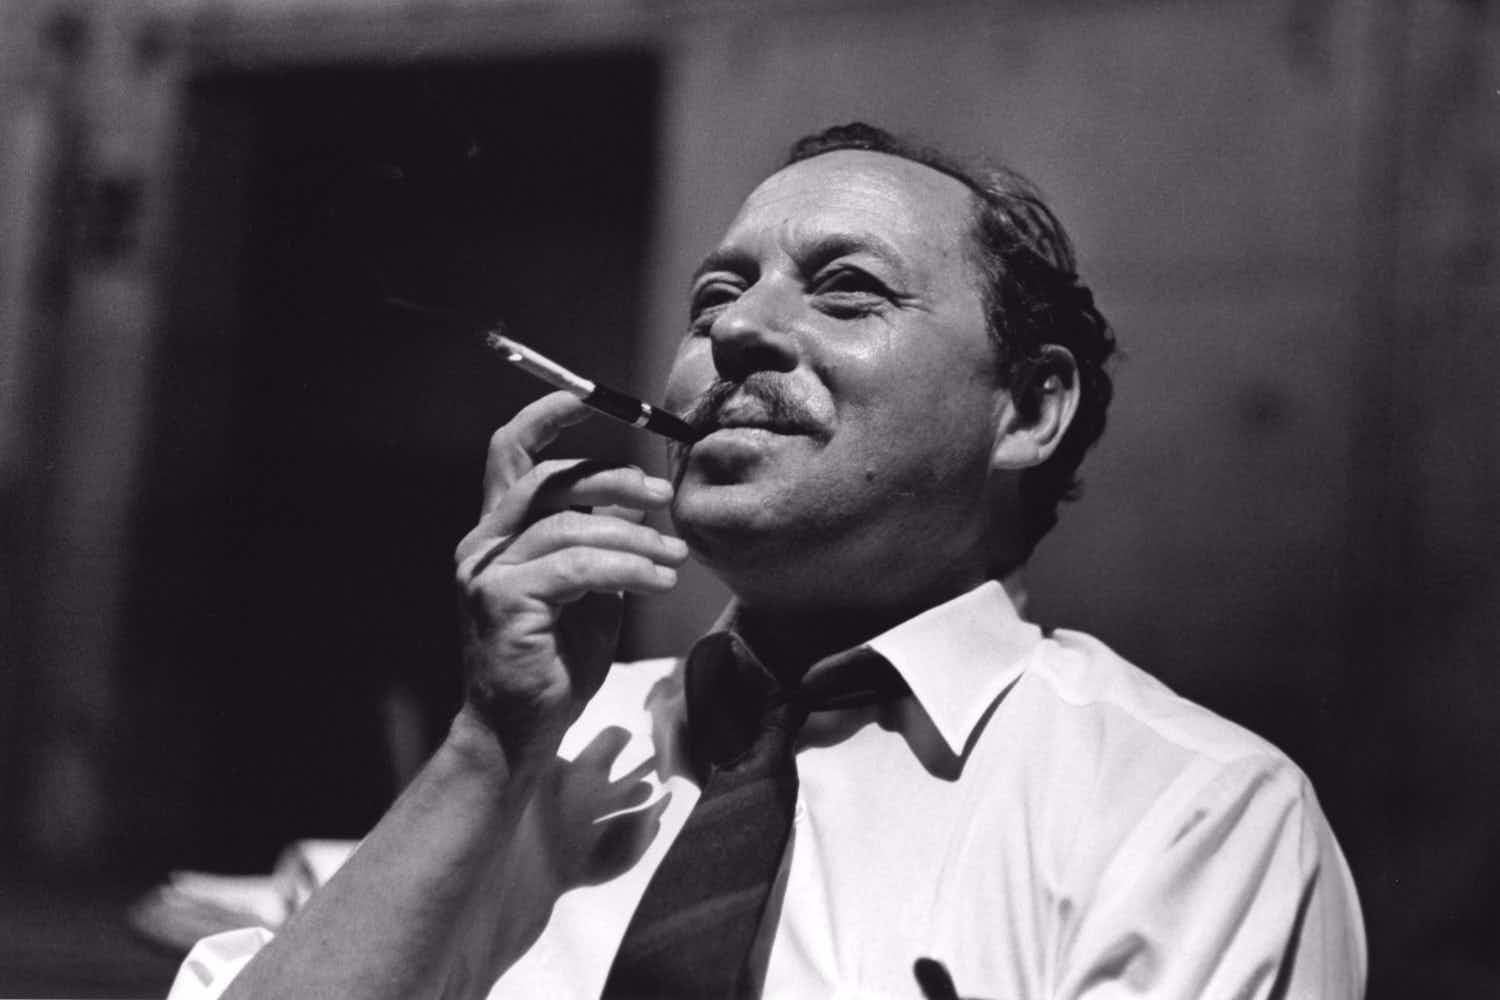 A new museum dedicated to Tennessee Williams will open in Key West